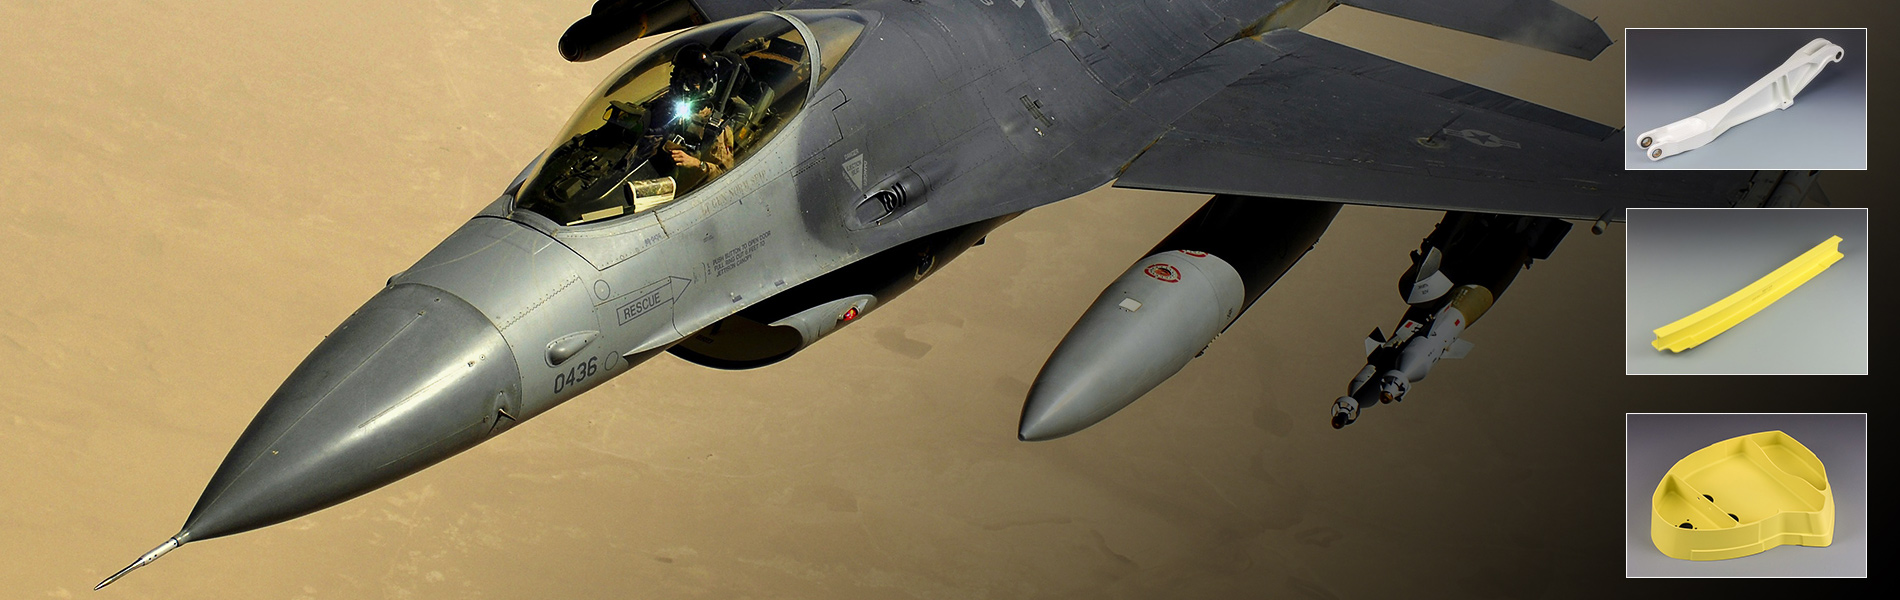 CNC Industries supplies machined parts for the F-16 Fighter